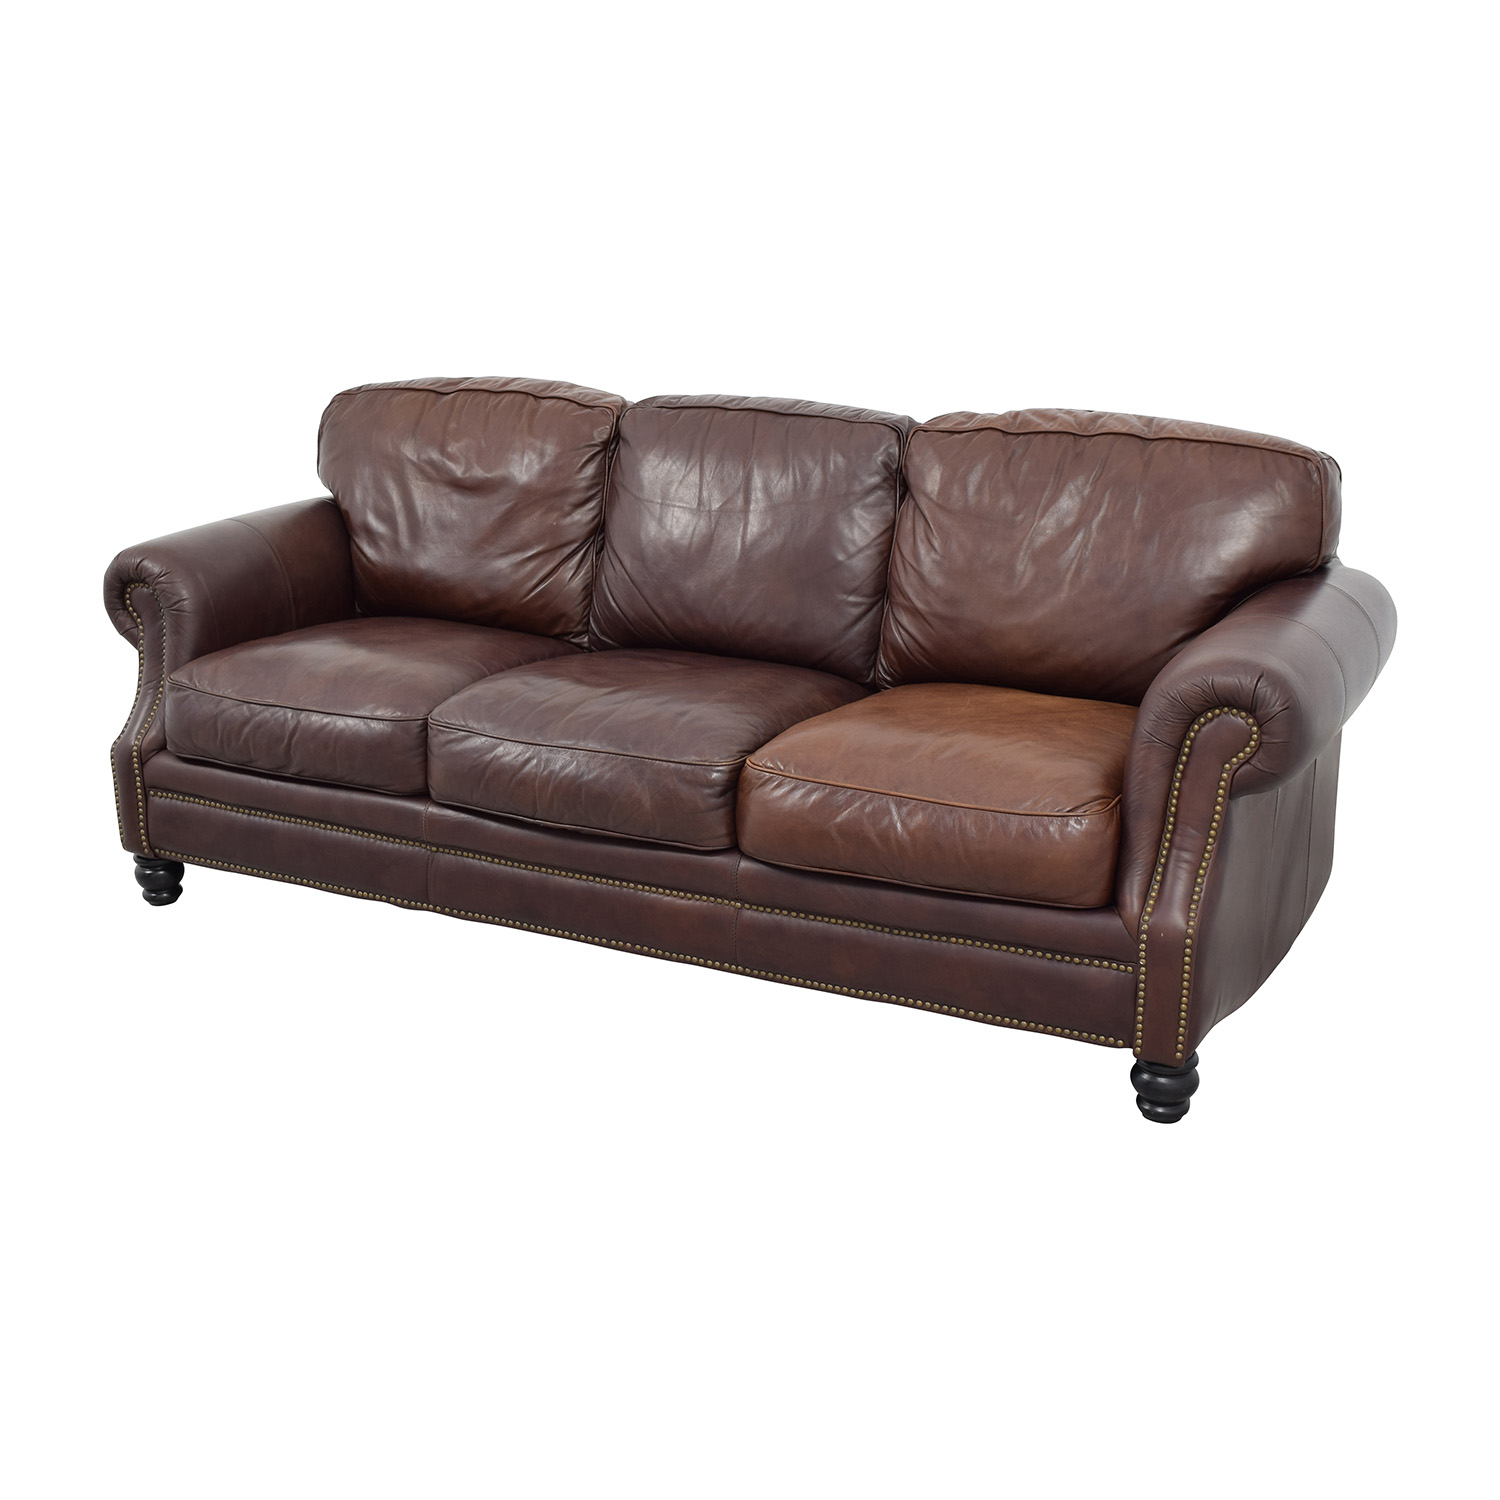 61 off brown leather studded three cushion sofa sofas